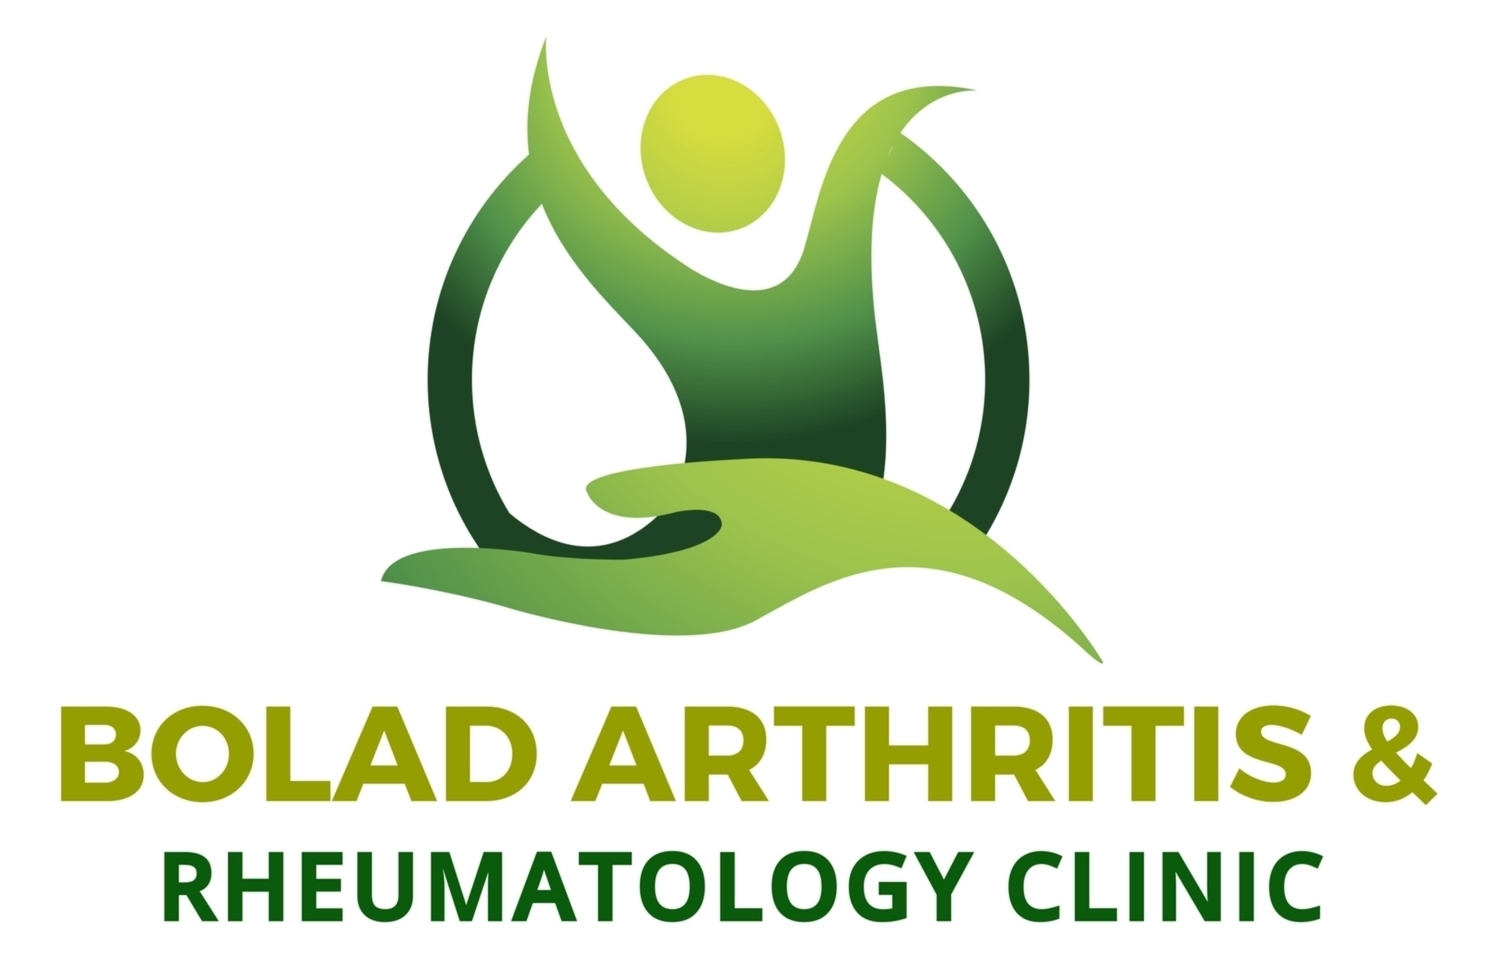 BOLAD ARTHRITIS and RHEUMATOLOGY CLINIC